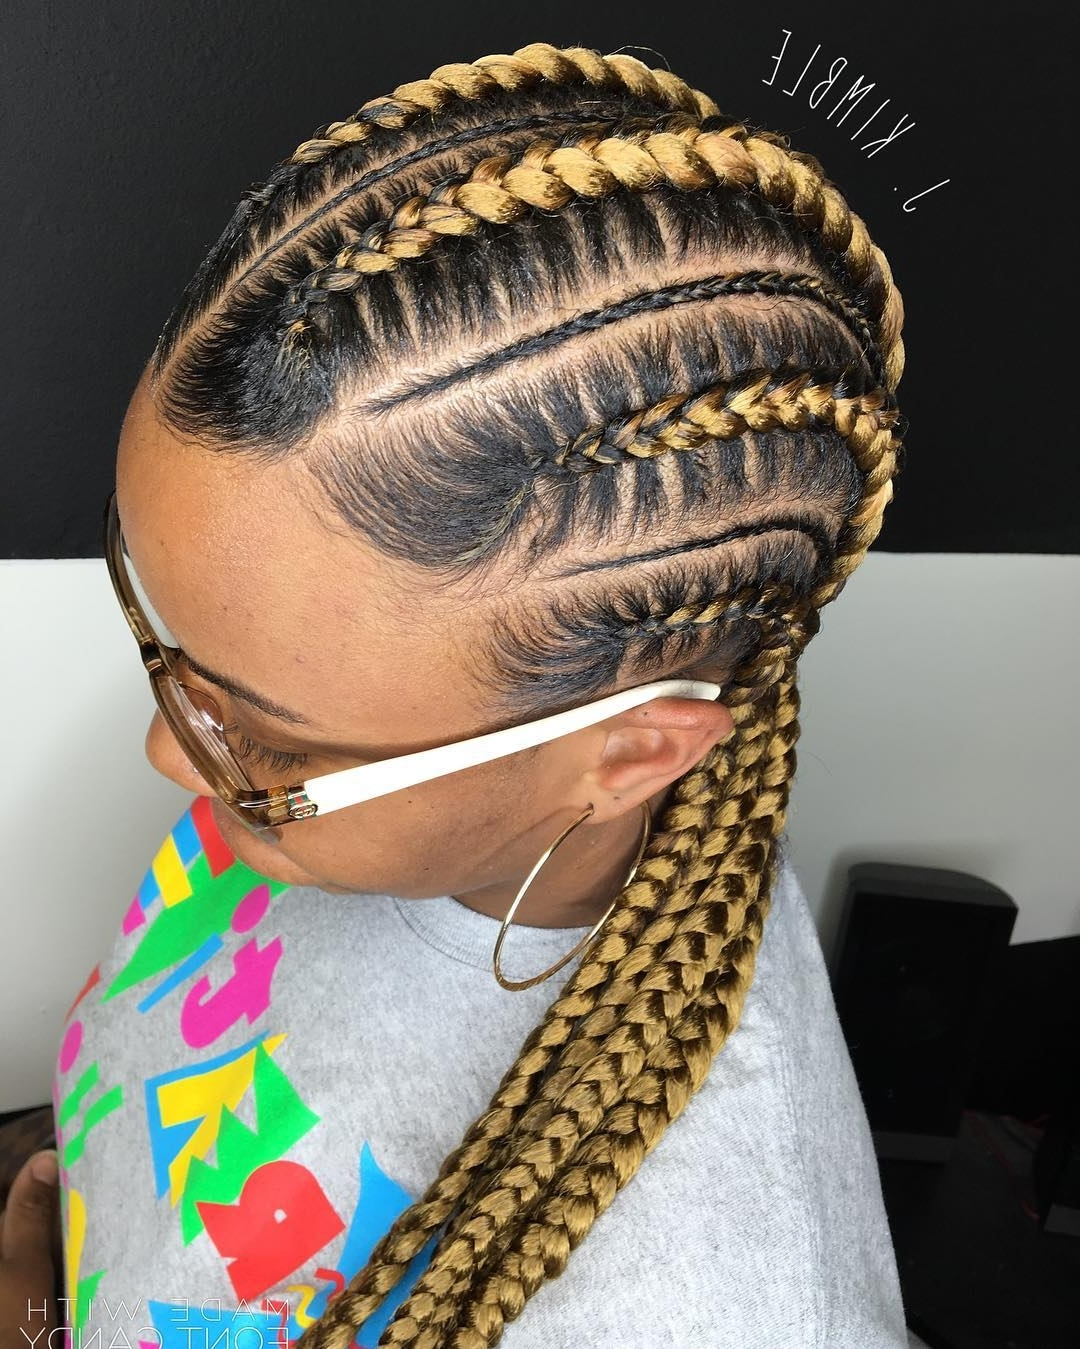 70 Best Black Braided Hairstyles That Turn Heads In 2018 Within Most Current Braided Rasta Hairstyles (Gallery 11 of 15)